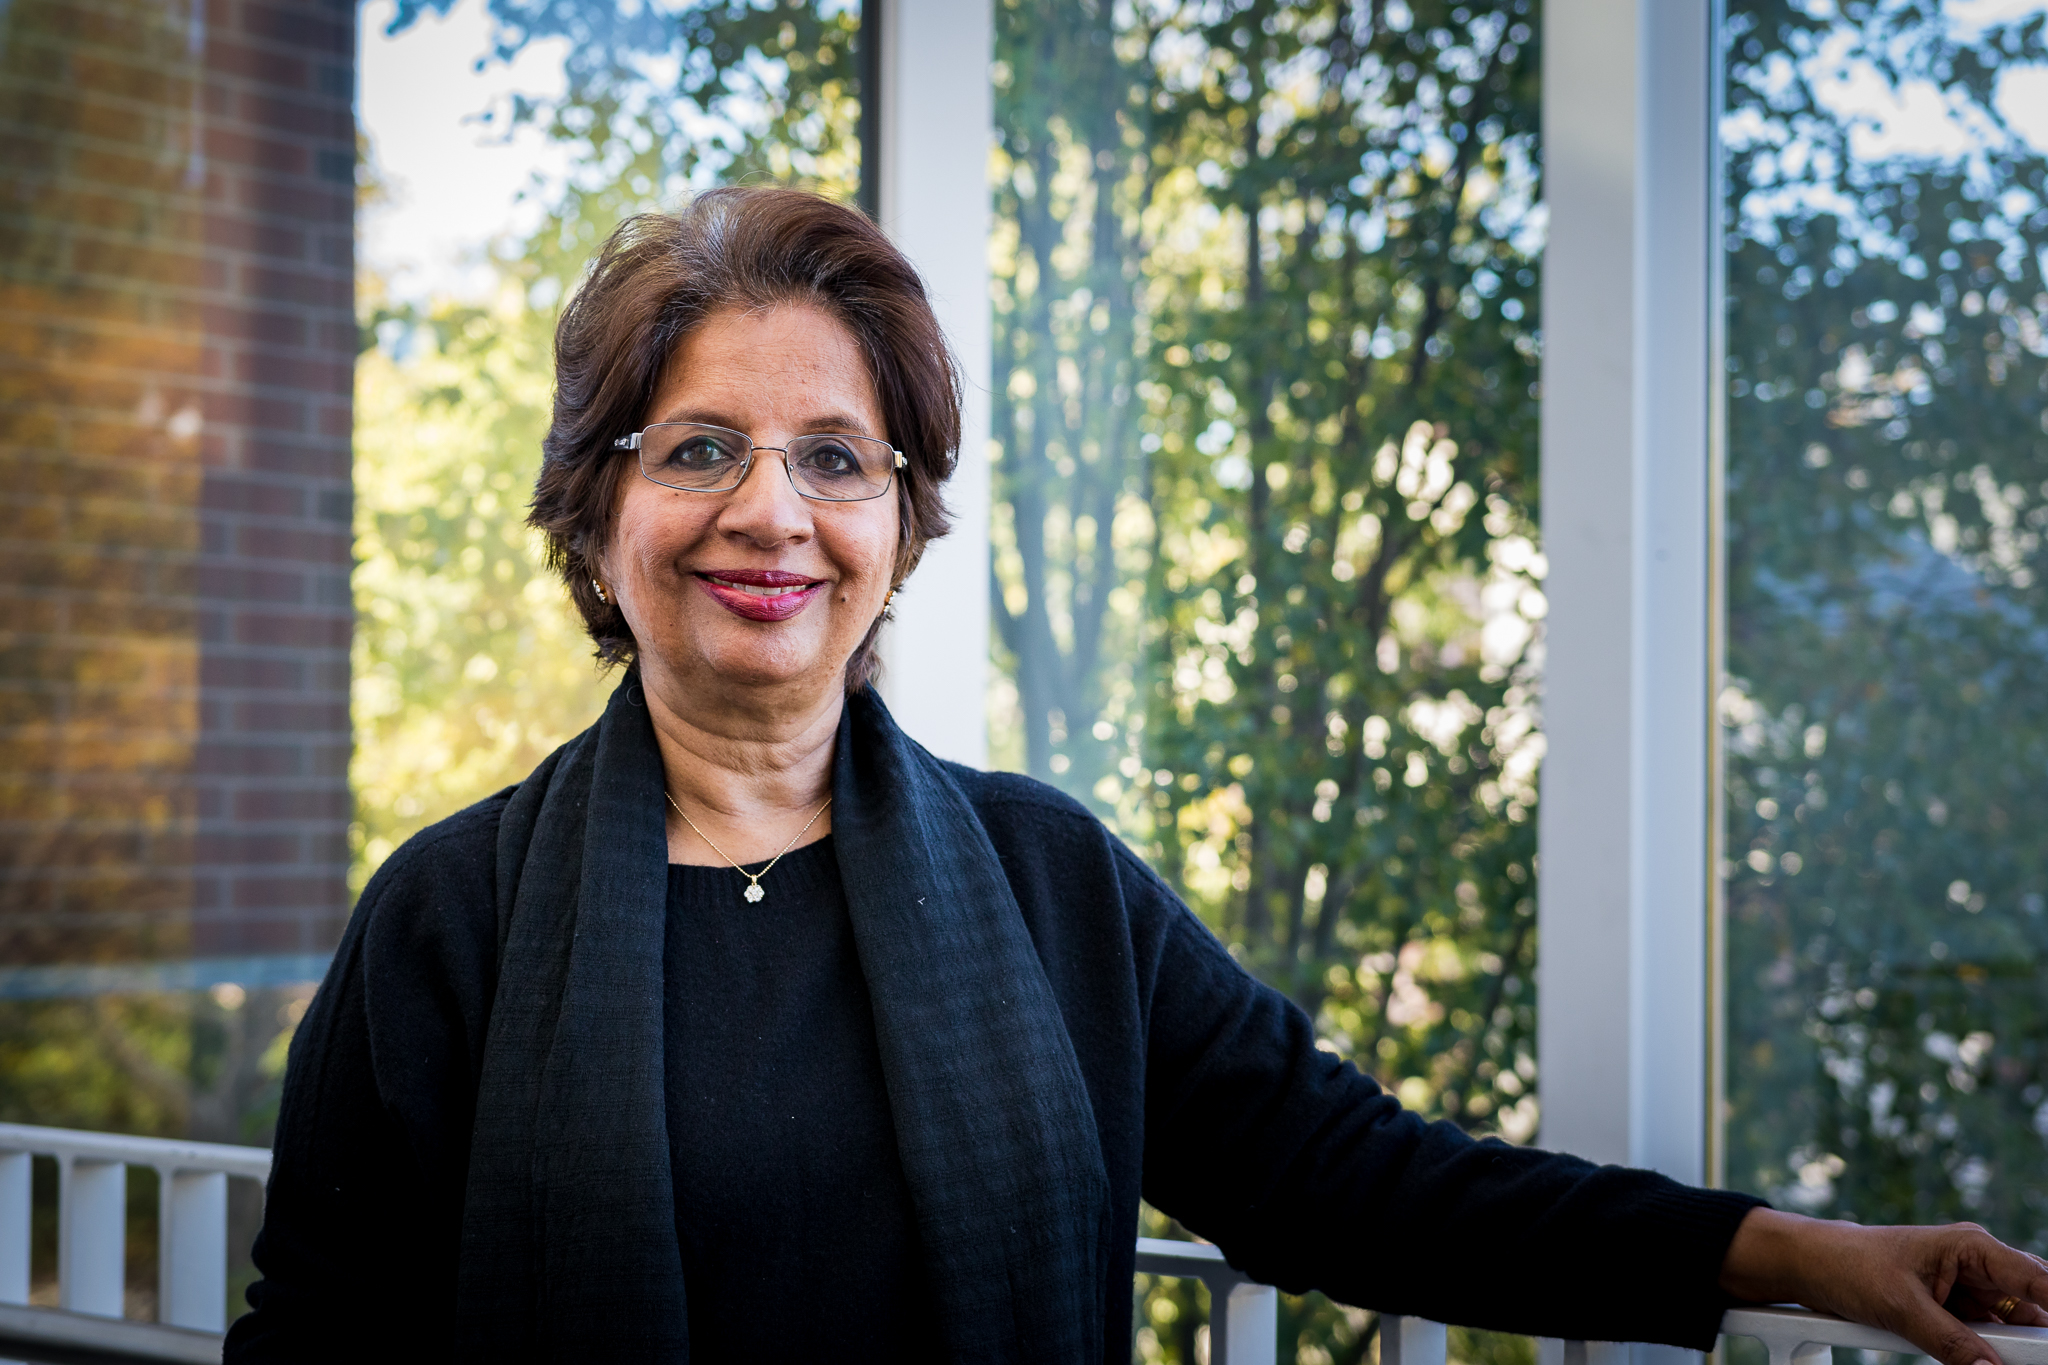 International Professor's Profile: Nirupama Rao